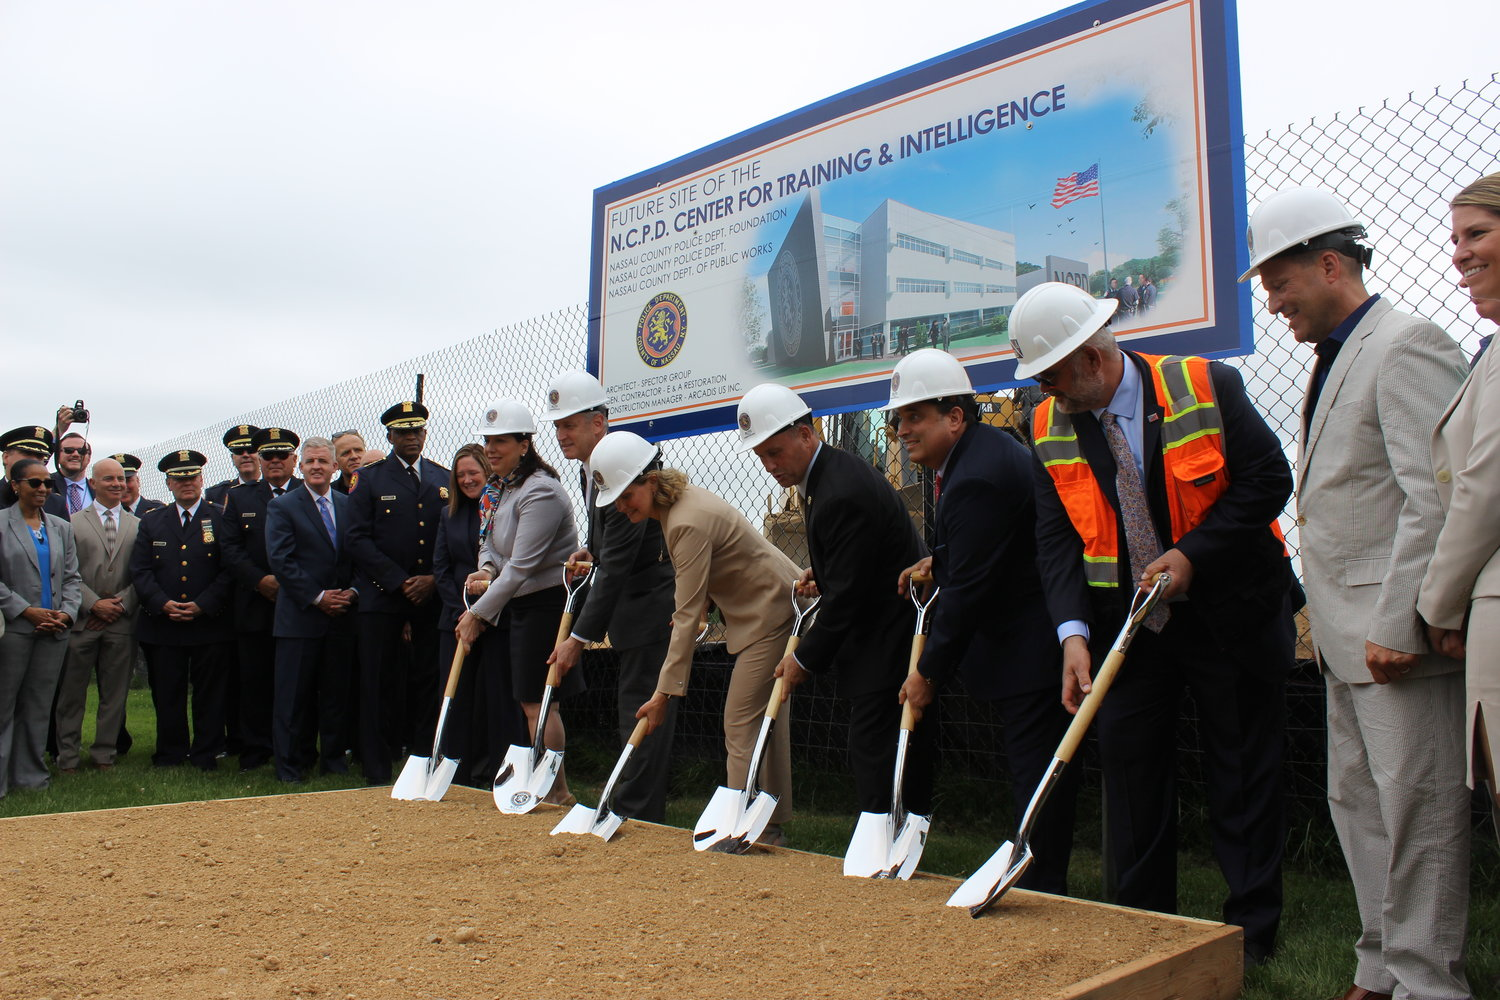 Officials celebrated the groundbreaking of the 89,000-square-foot Nassau County Training and Intelligence Center on the Nassau Community College campus in Garden City on May 29.